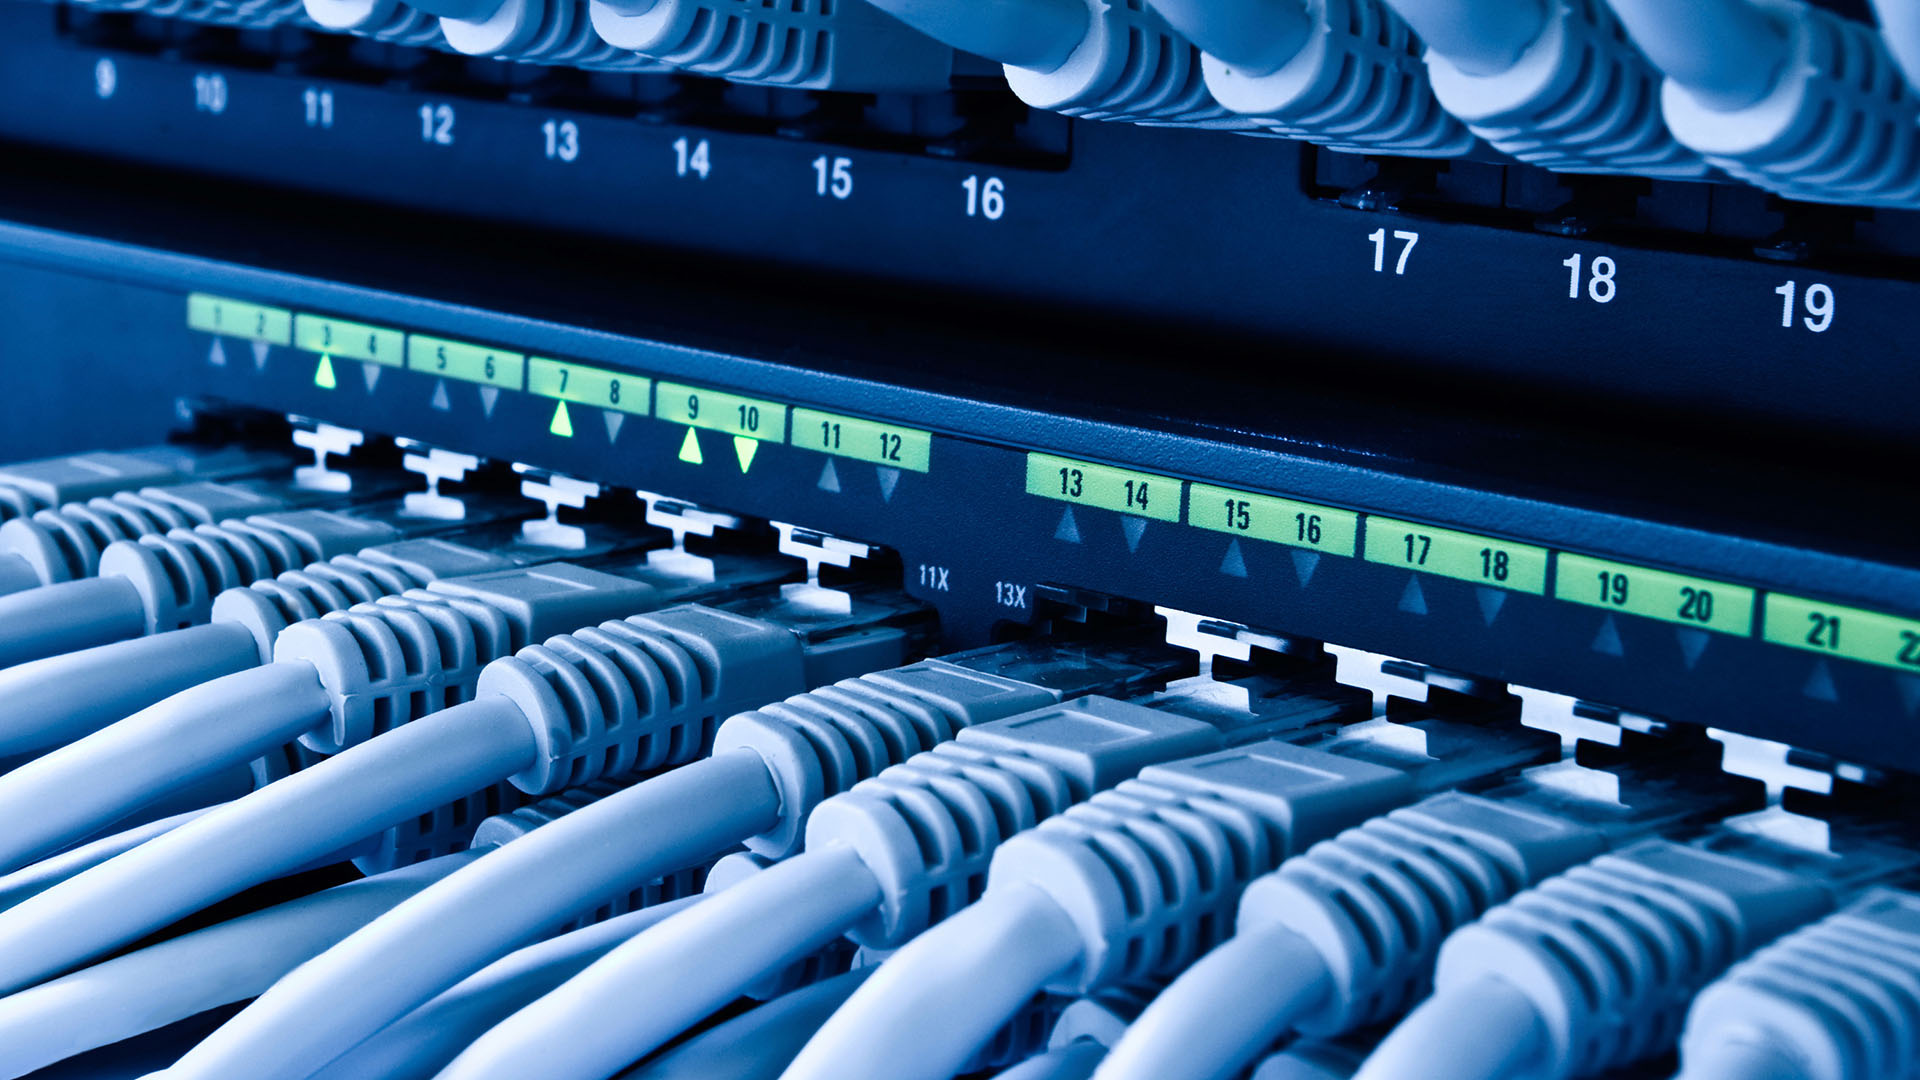 Coalgood Kentucky High Quality Voice & Data Network Cabling Provider